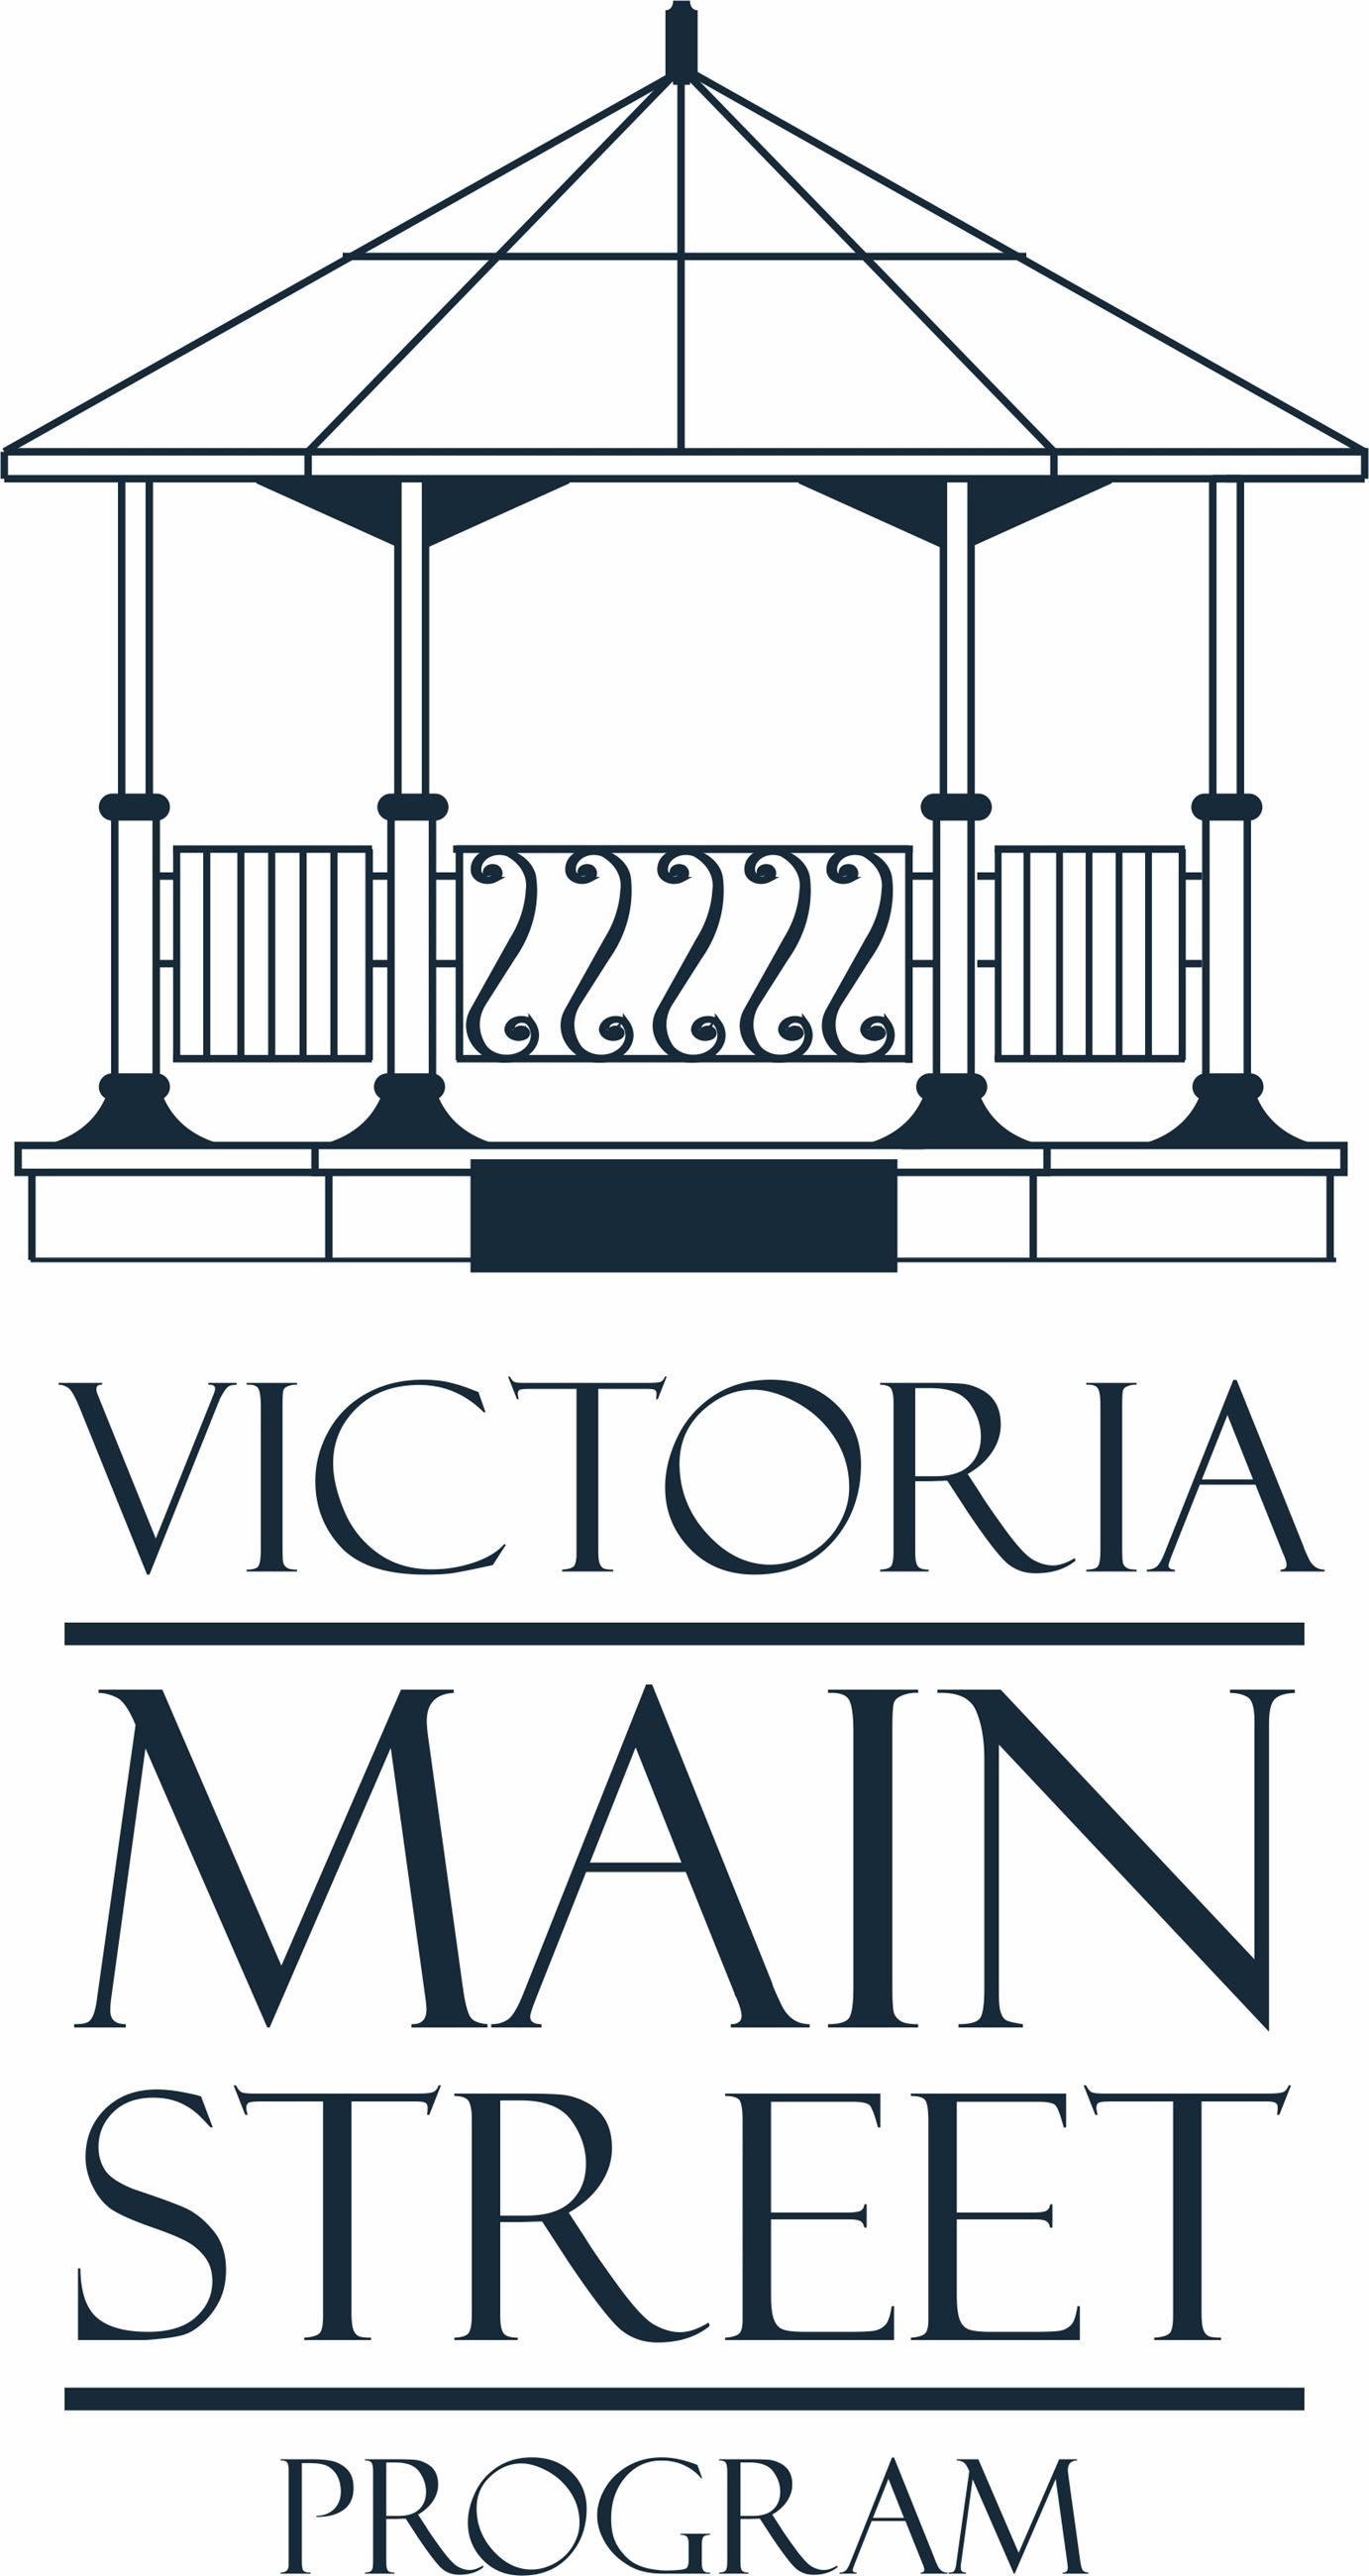 Victoria Main Street Program logo